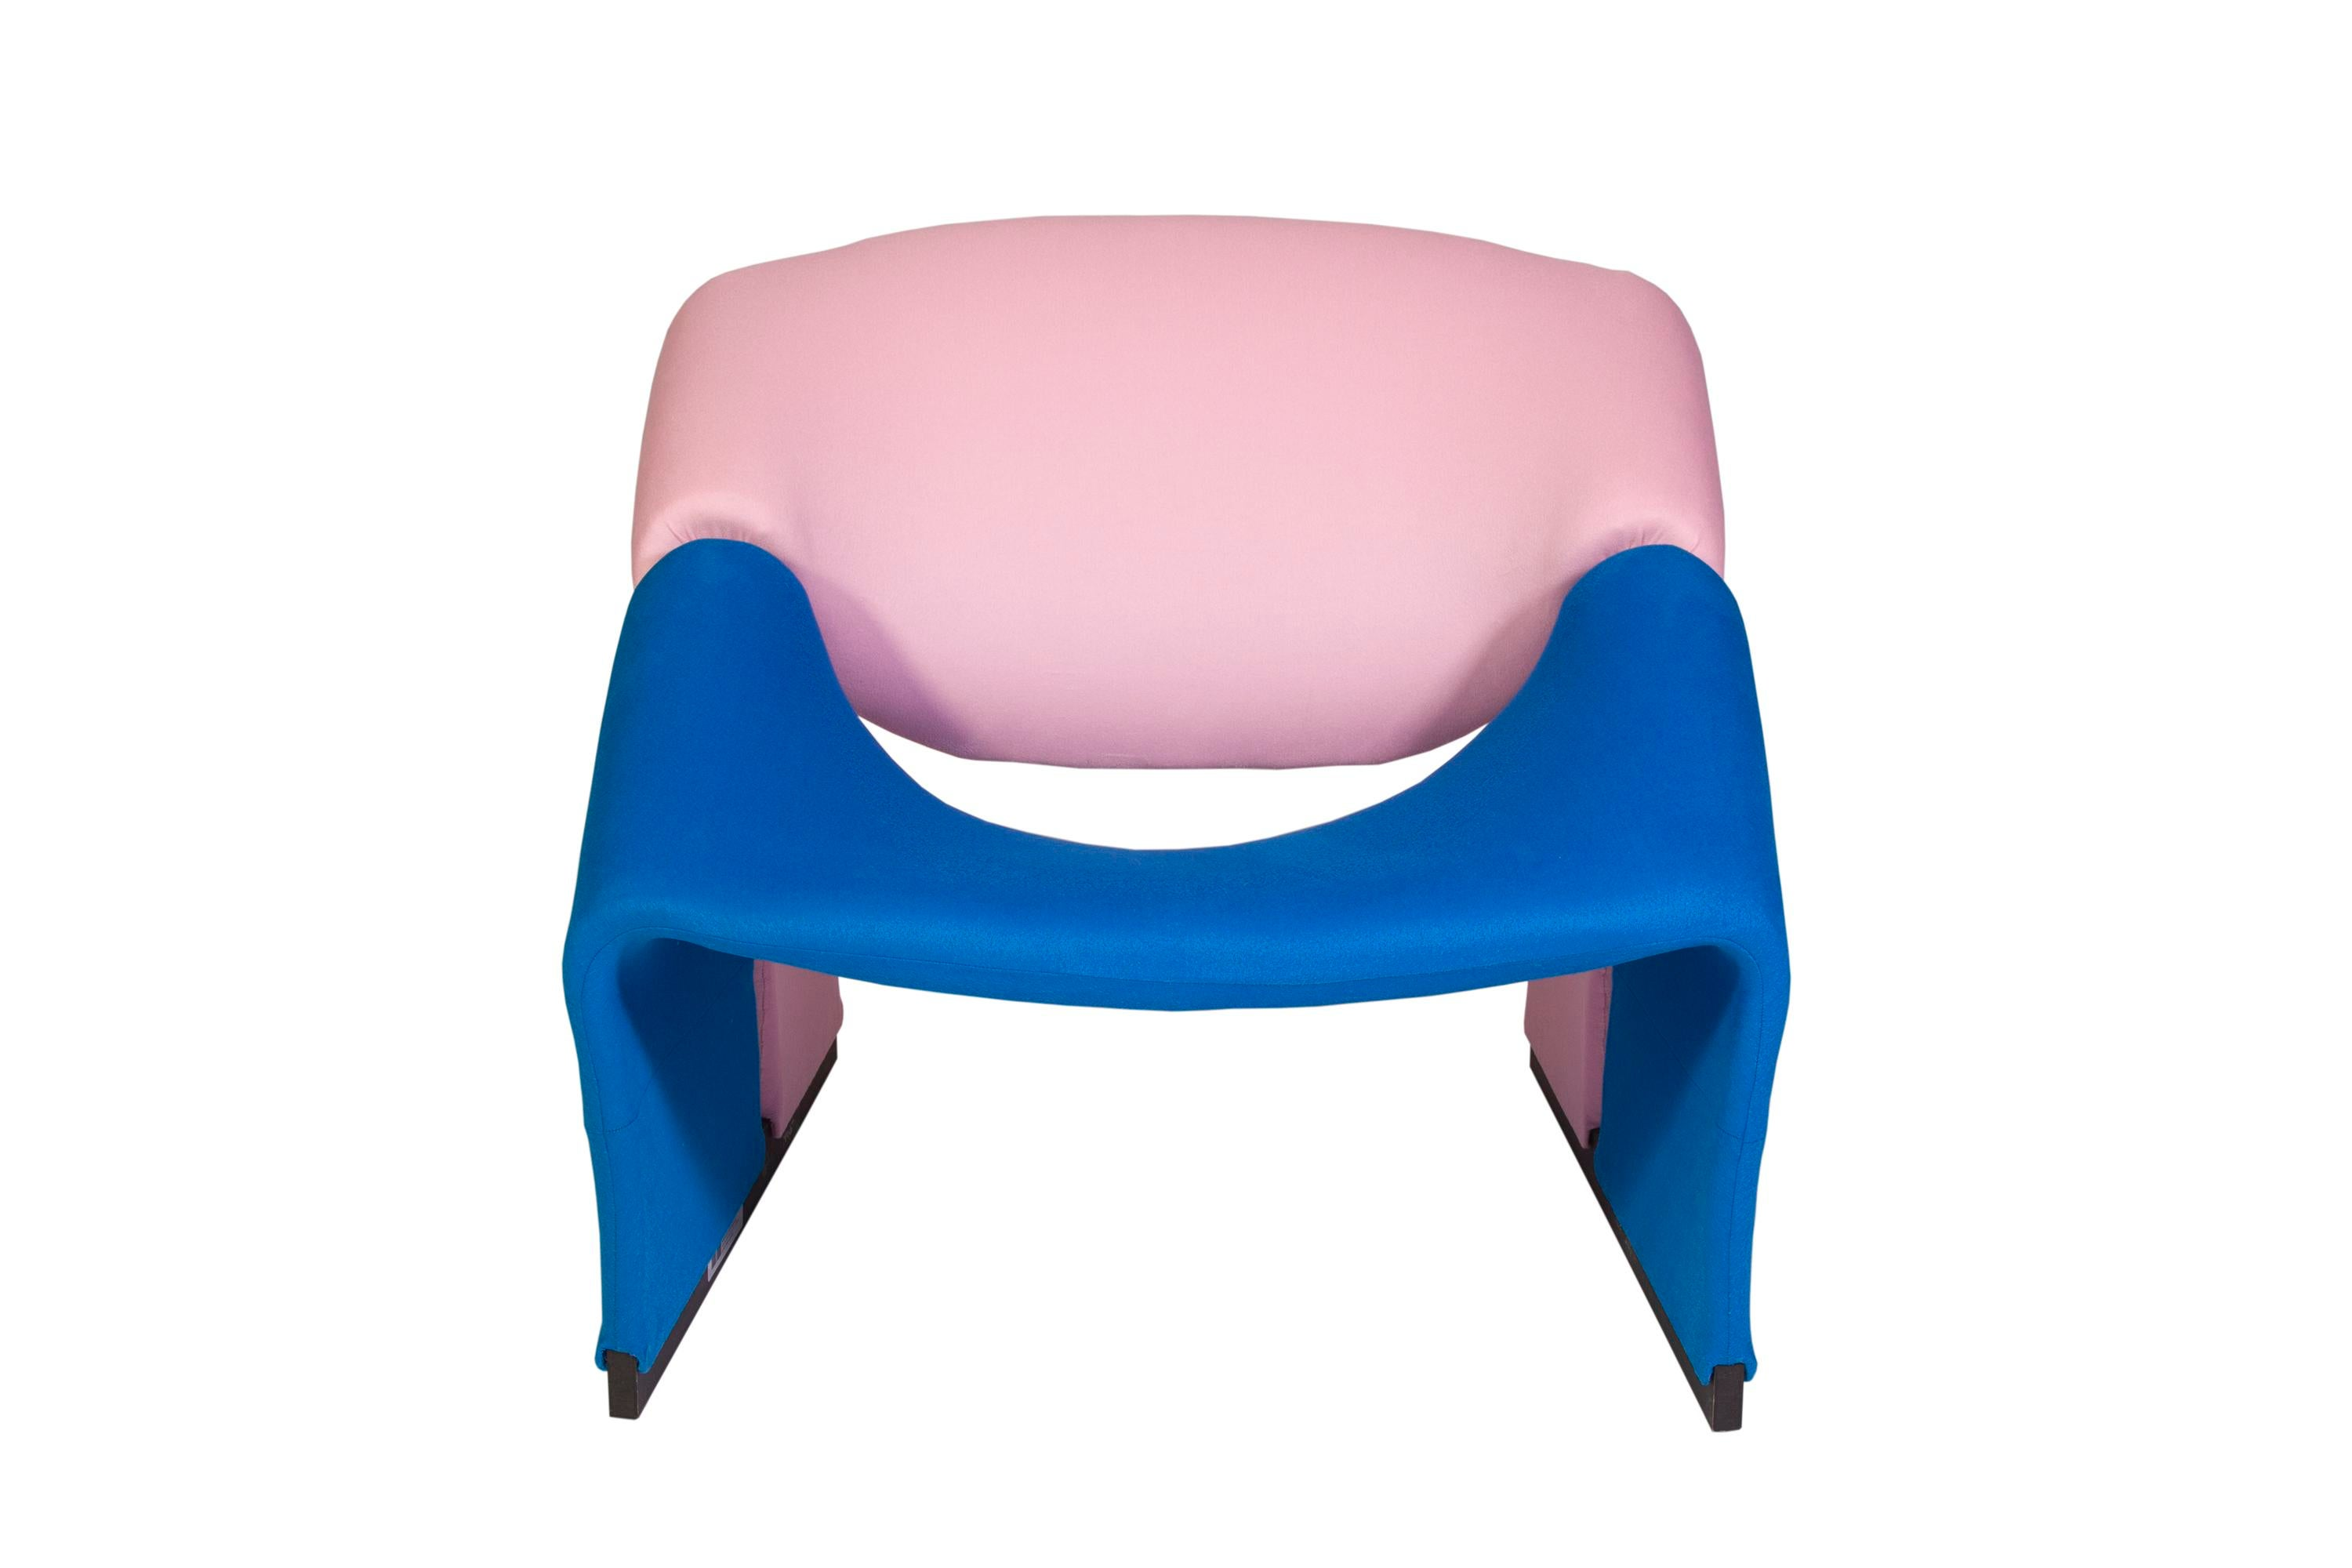 Upholstered Chair And Ottoman pierre paulin oscar de la renta cashmere upholstered chairs